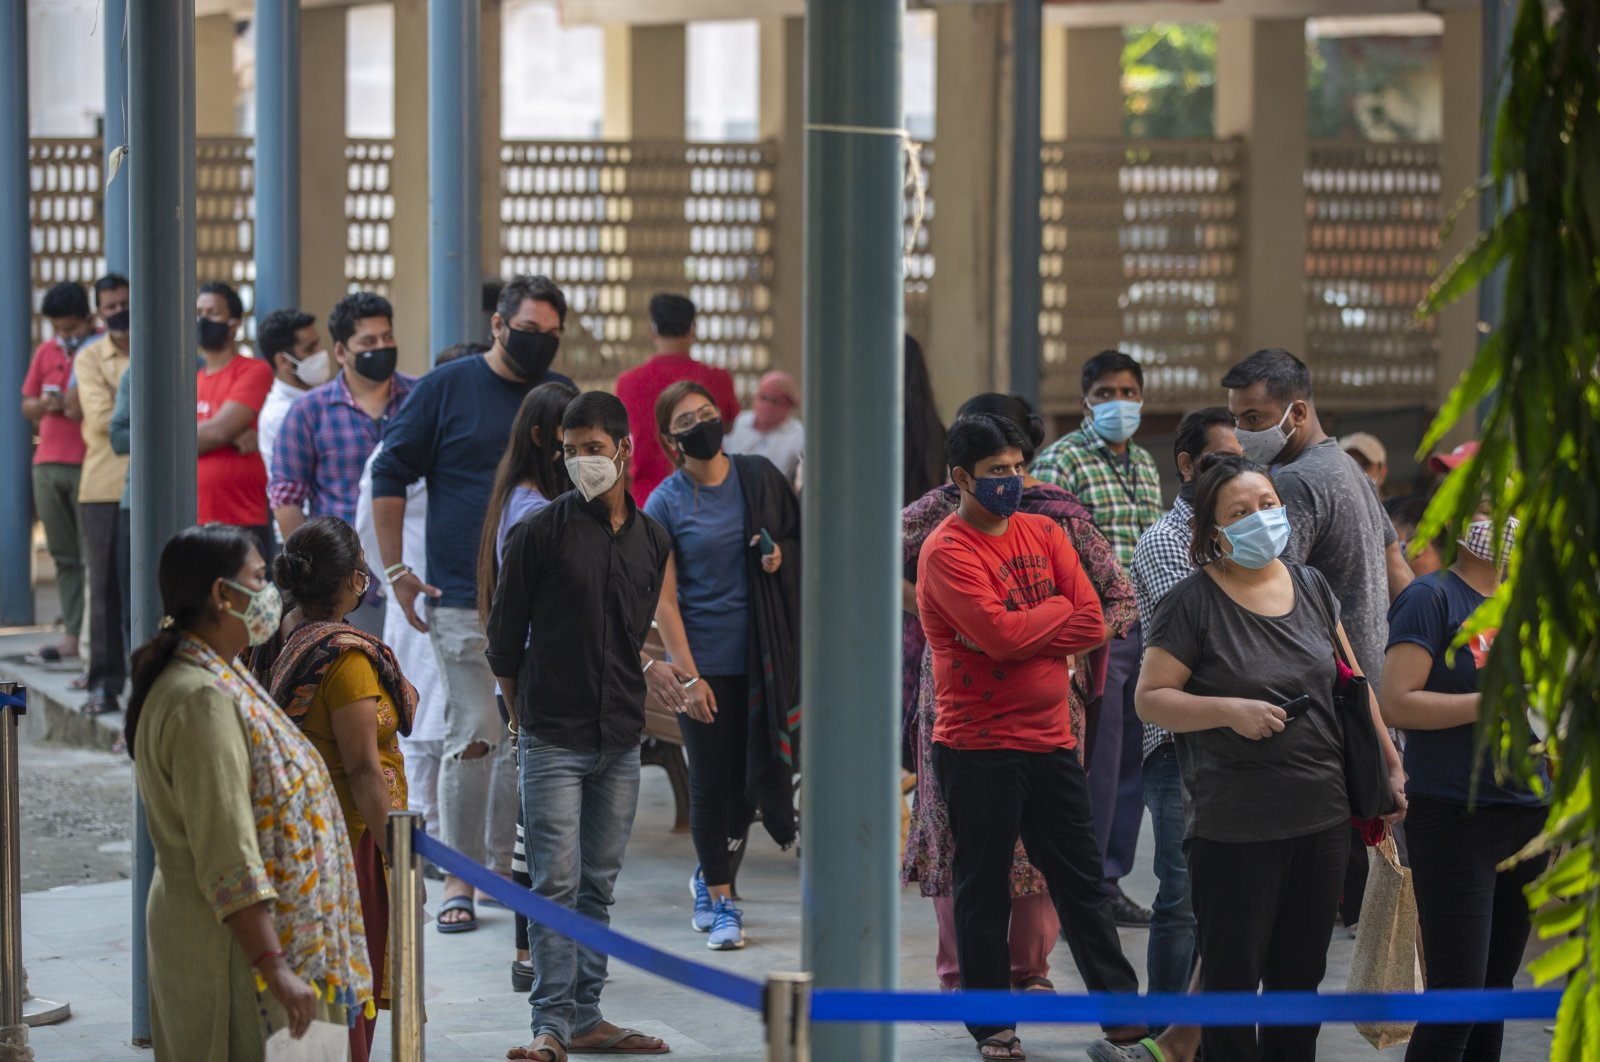 People wait for their turn at a COVID-19 testing center in New Delhi, India, Oct. 29, 2020. (AP Photo)